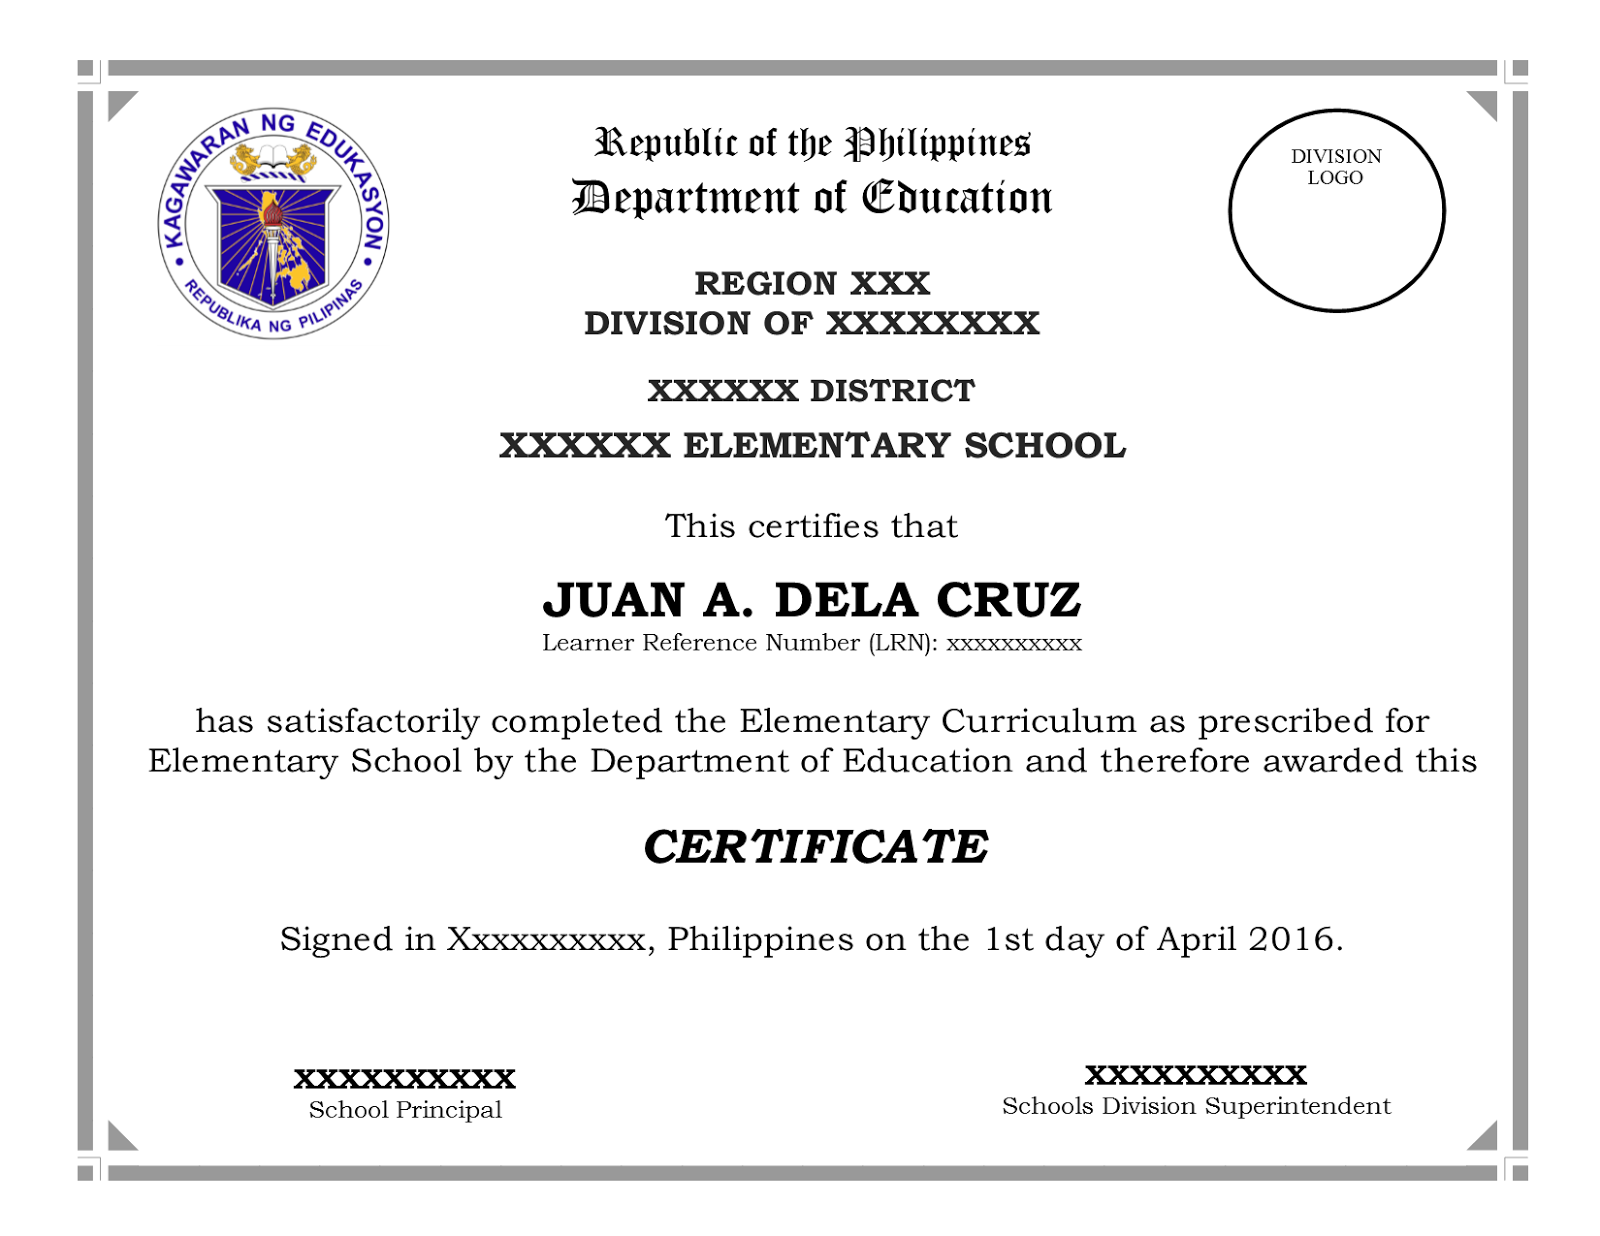 Diploma ribbons awards and certificates deped official lay out editable sample templates for grade 6 and grade 10 certificate yadclub Choice Image